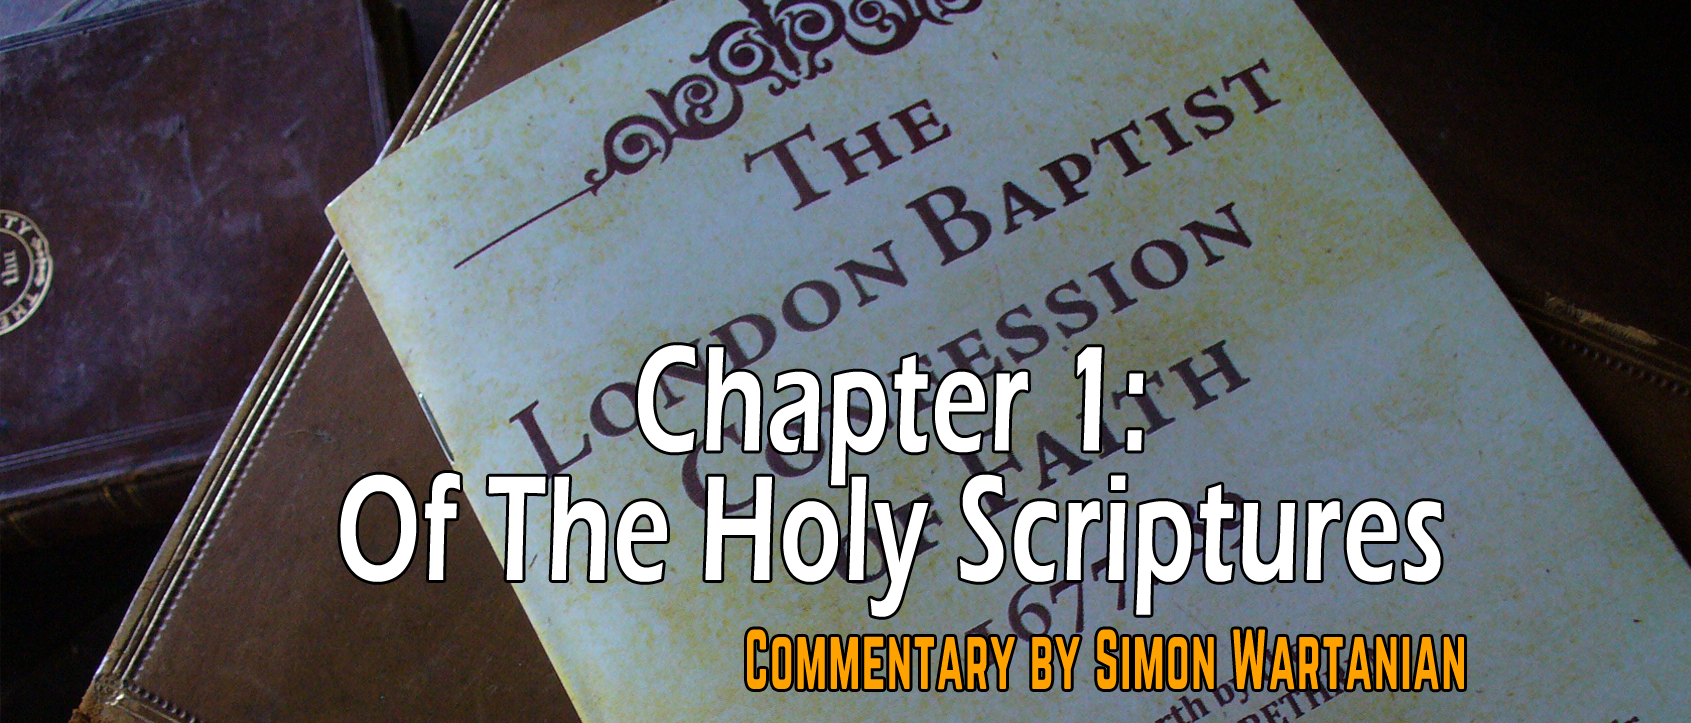 1689 Baptist Confession Chapter 1: Of the Holy Scriptures - Commentary